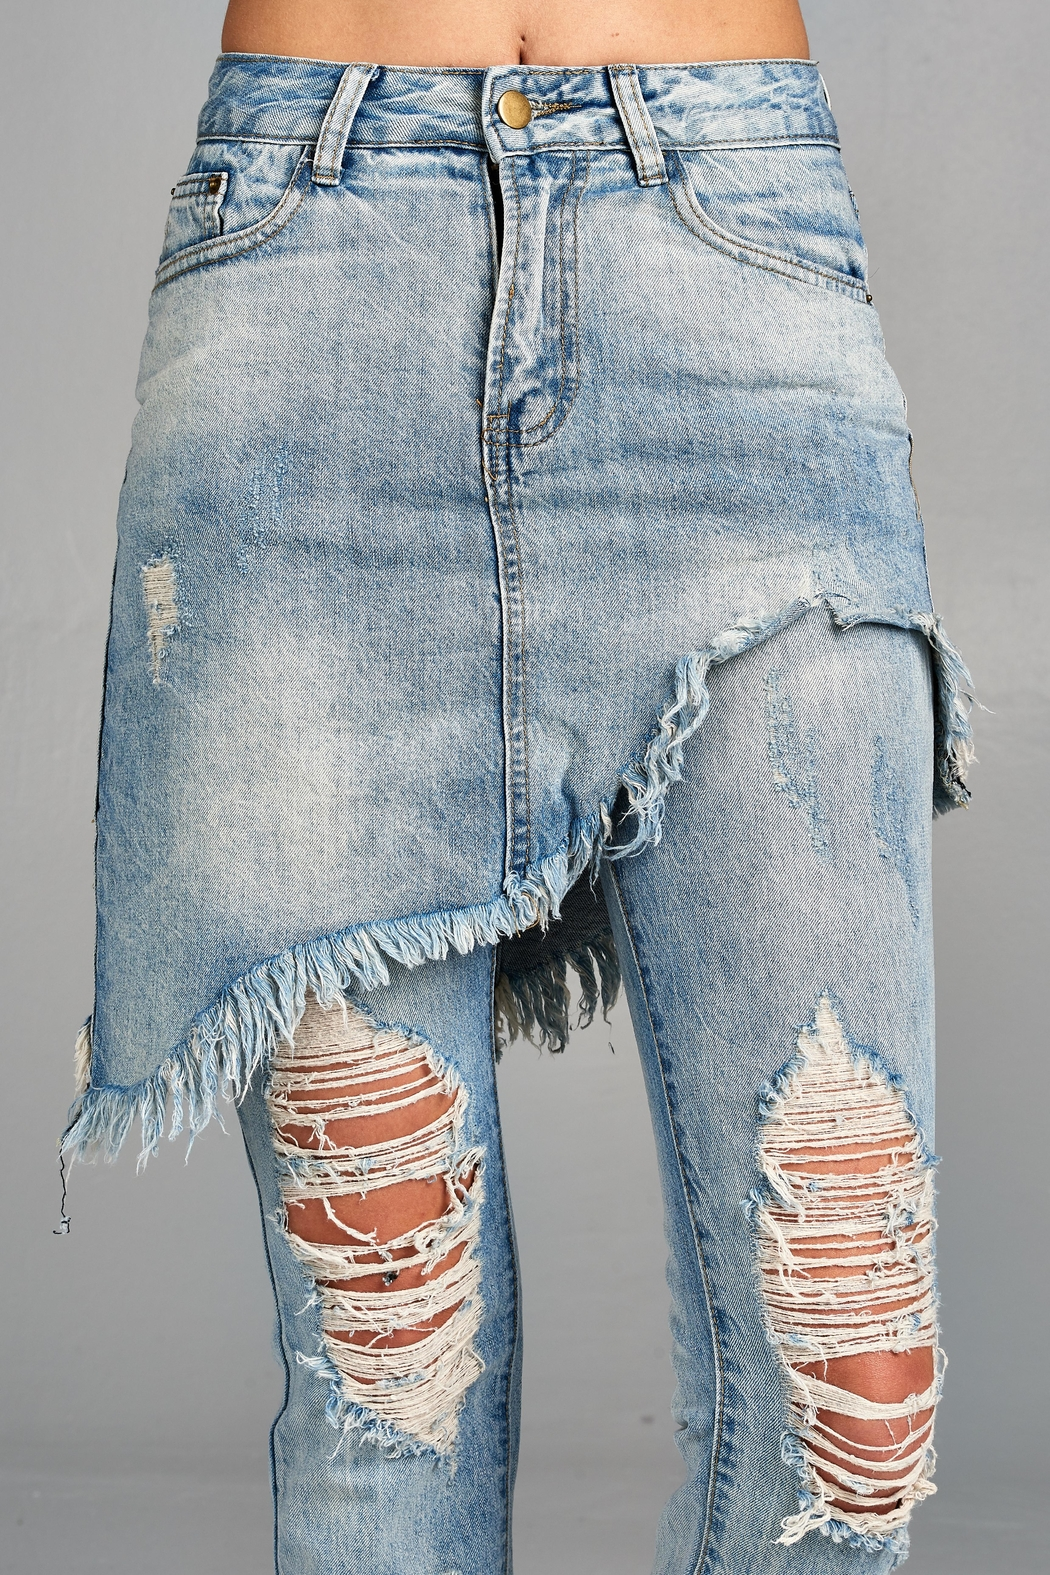 ed74dff963 Racine Distressed Skirted Jeans from California by Racine Love ...